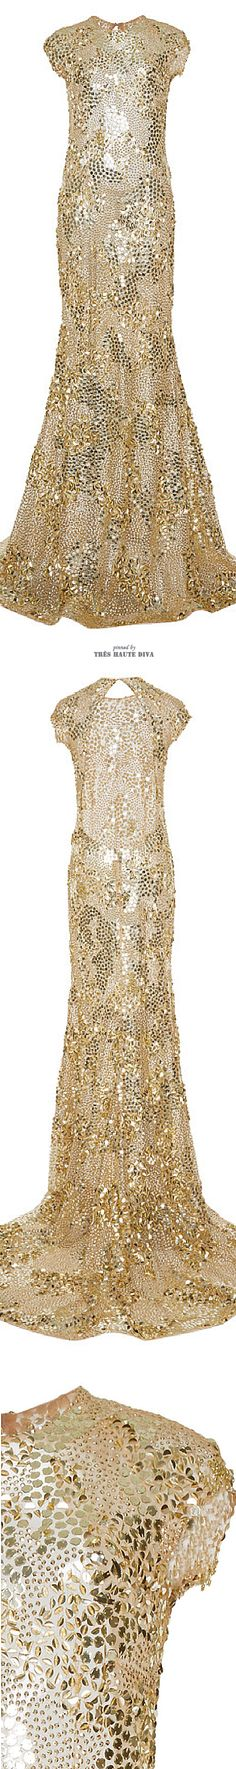 White and Gold Wedding. Gold Bridesmaid Dress. Elegant and Glamorous. Naeem Khan Gold Sequin Gown ♔ SS 2015